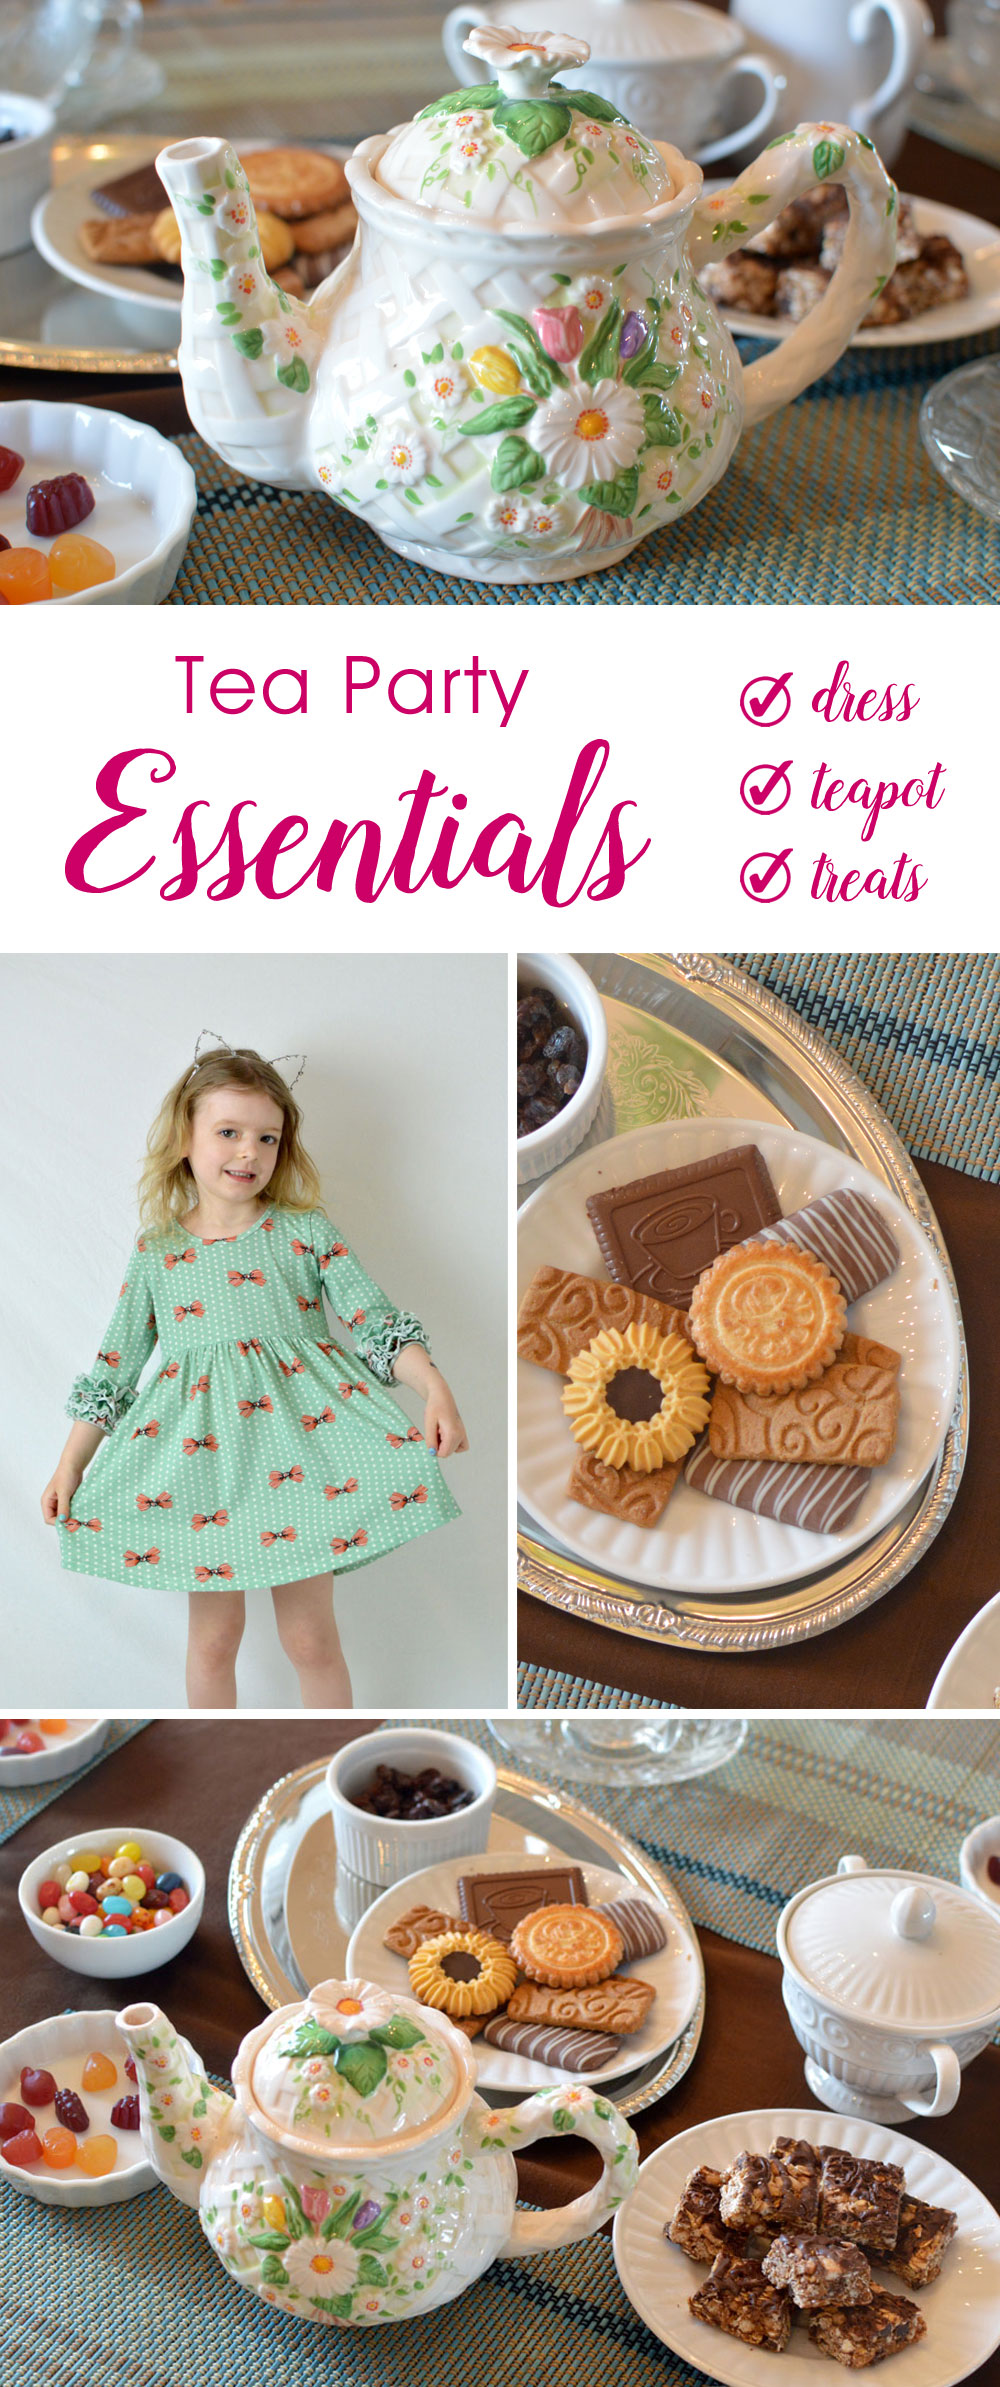 Essentials for any tea party and creative kids snacks